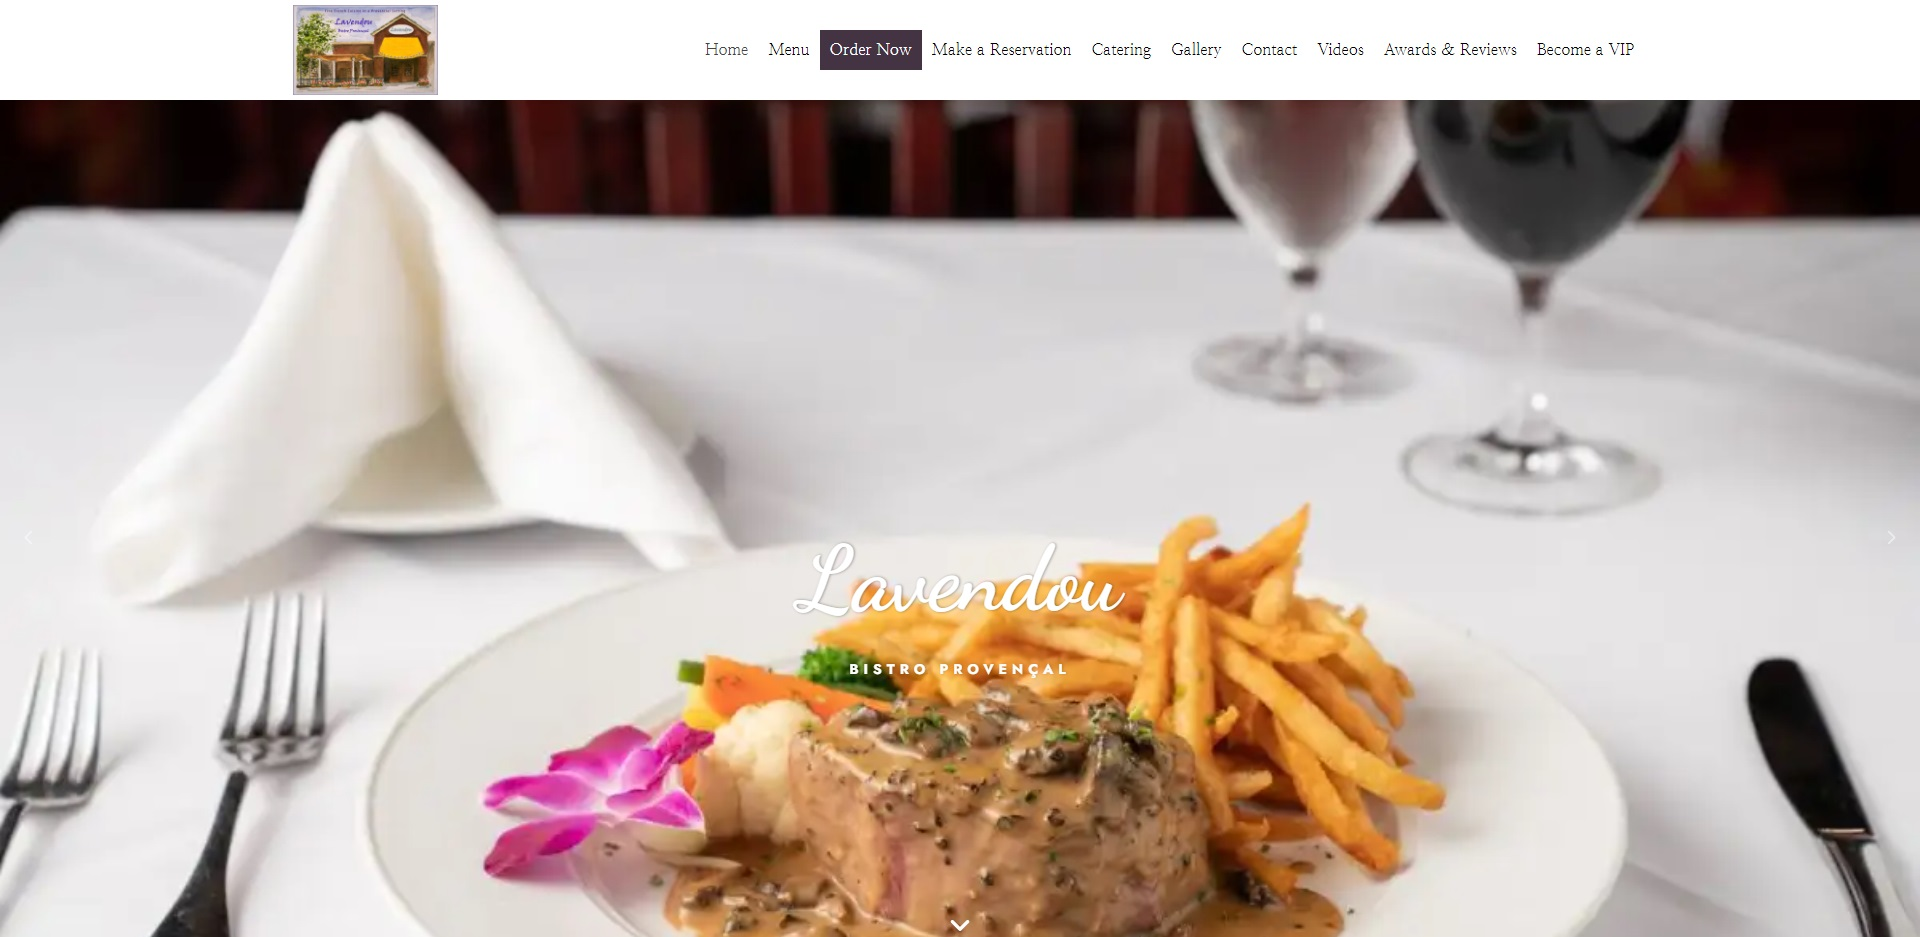 Dallas' Best French Cuisine